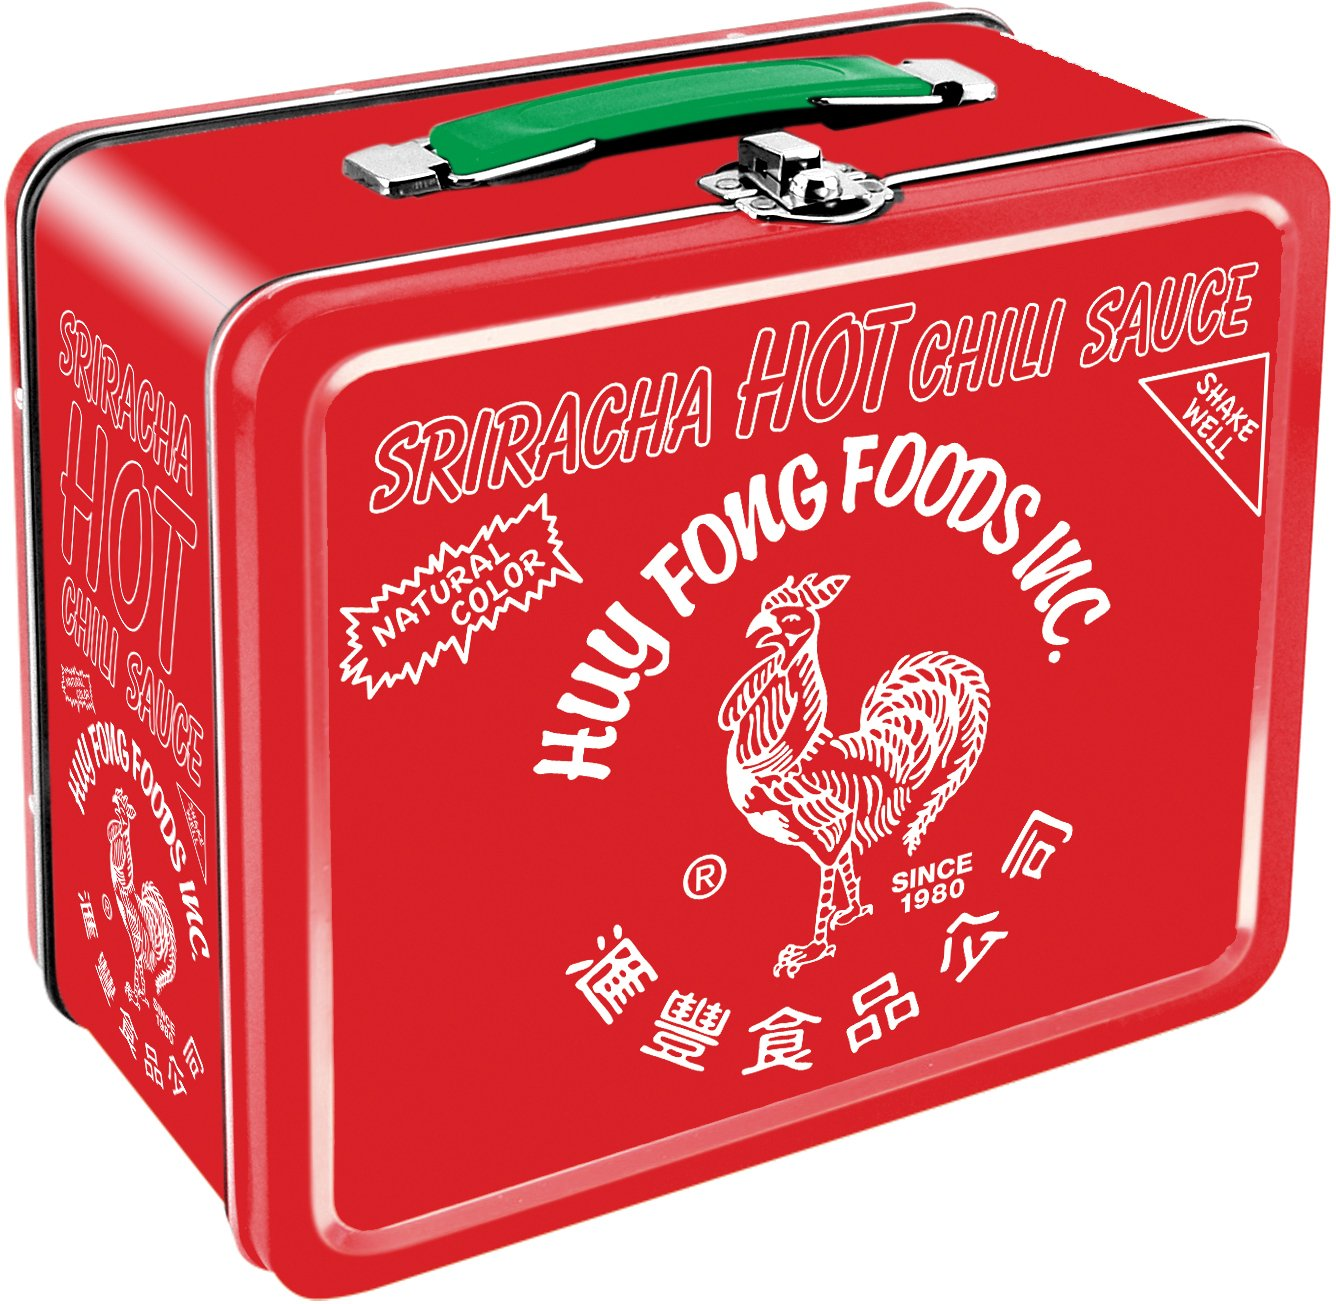 Sriracha Lunch Box